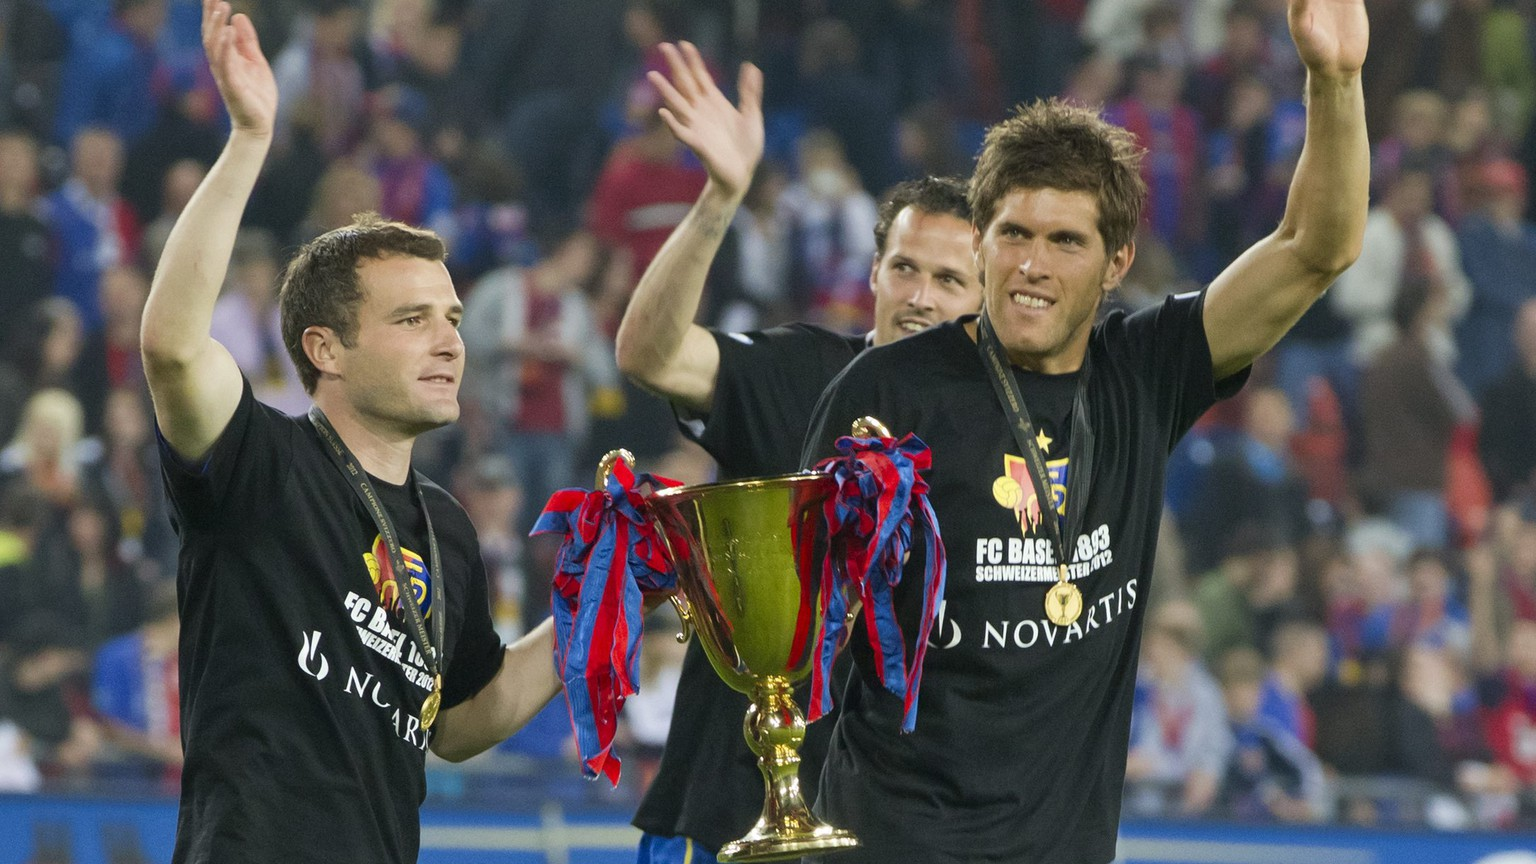 Basel's Alexander Frei, Marco Streller and Benjamin Huggel, from left, celebrate with their Trophy after the Super League soccer match between FC Basel and BSC Young Boys at the St. Jakob-Park stadium in Basel, Switzerland, on Wednesday, May 23, 2012. (KEYSTONE/Alessandro Della Bella)